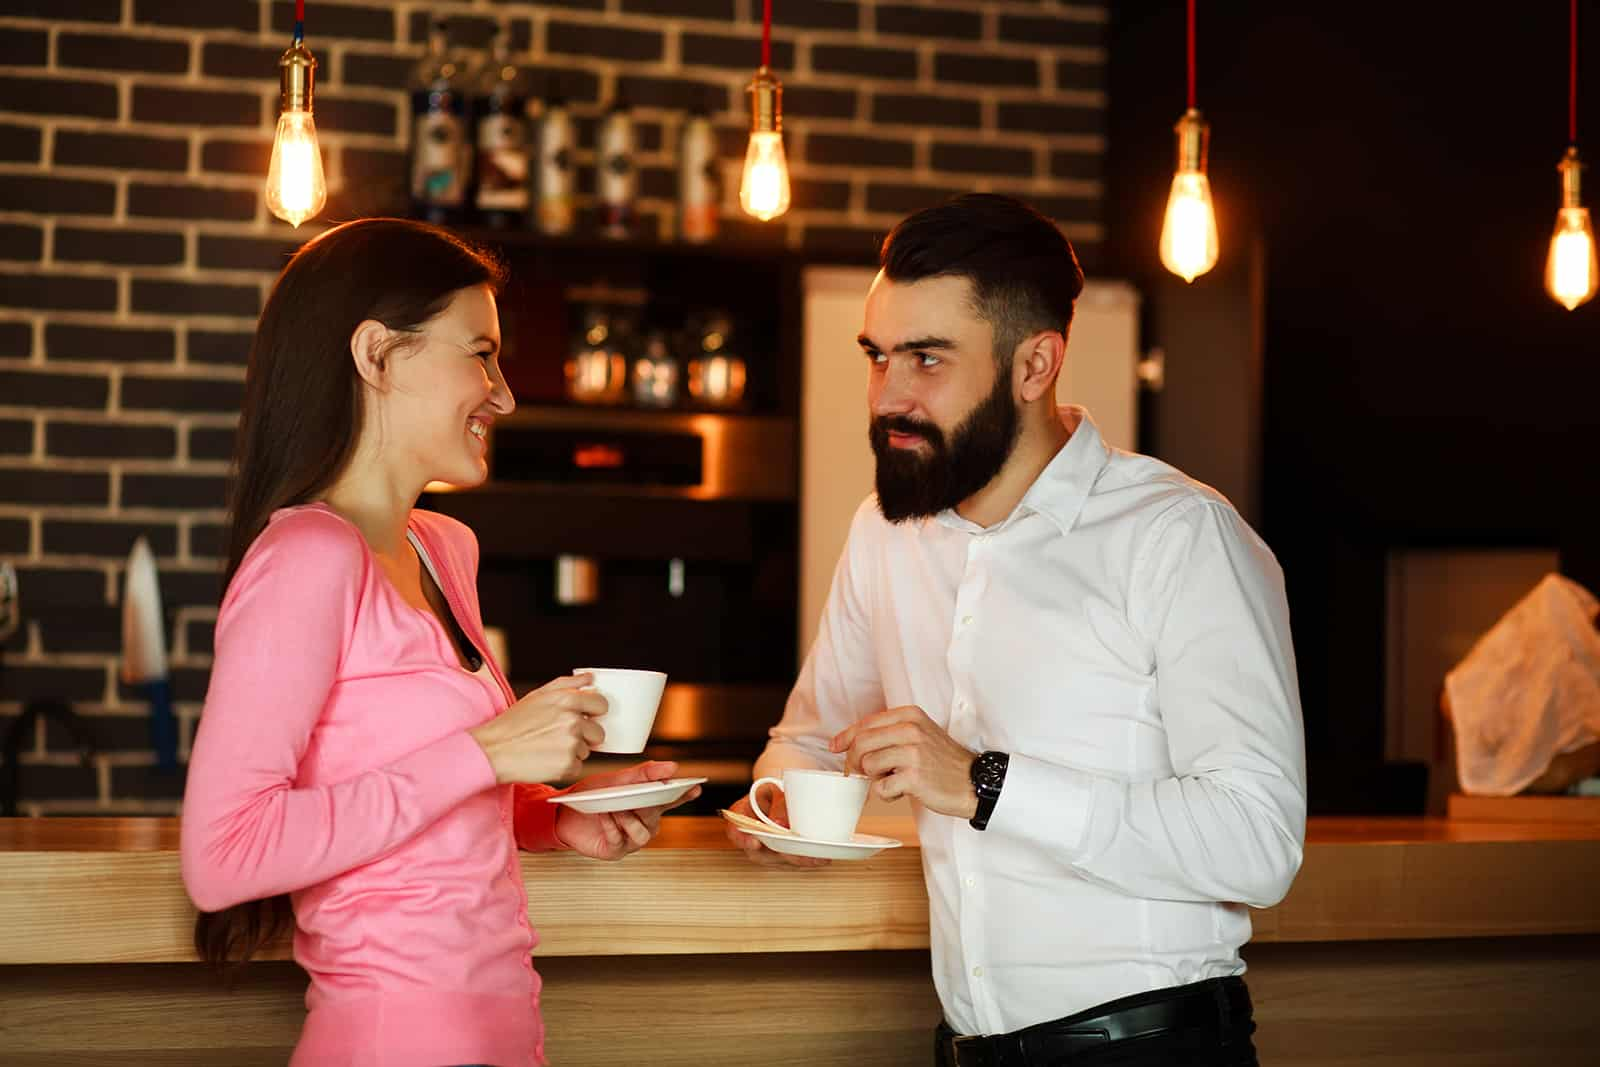 a man and a woman looking at each other while standing at the counter bar